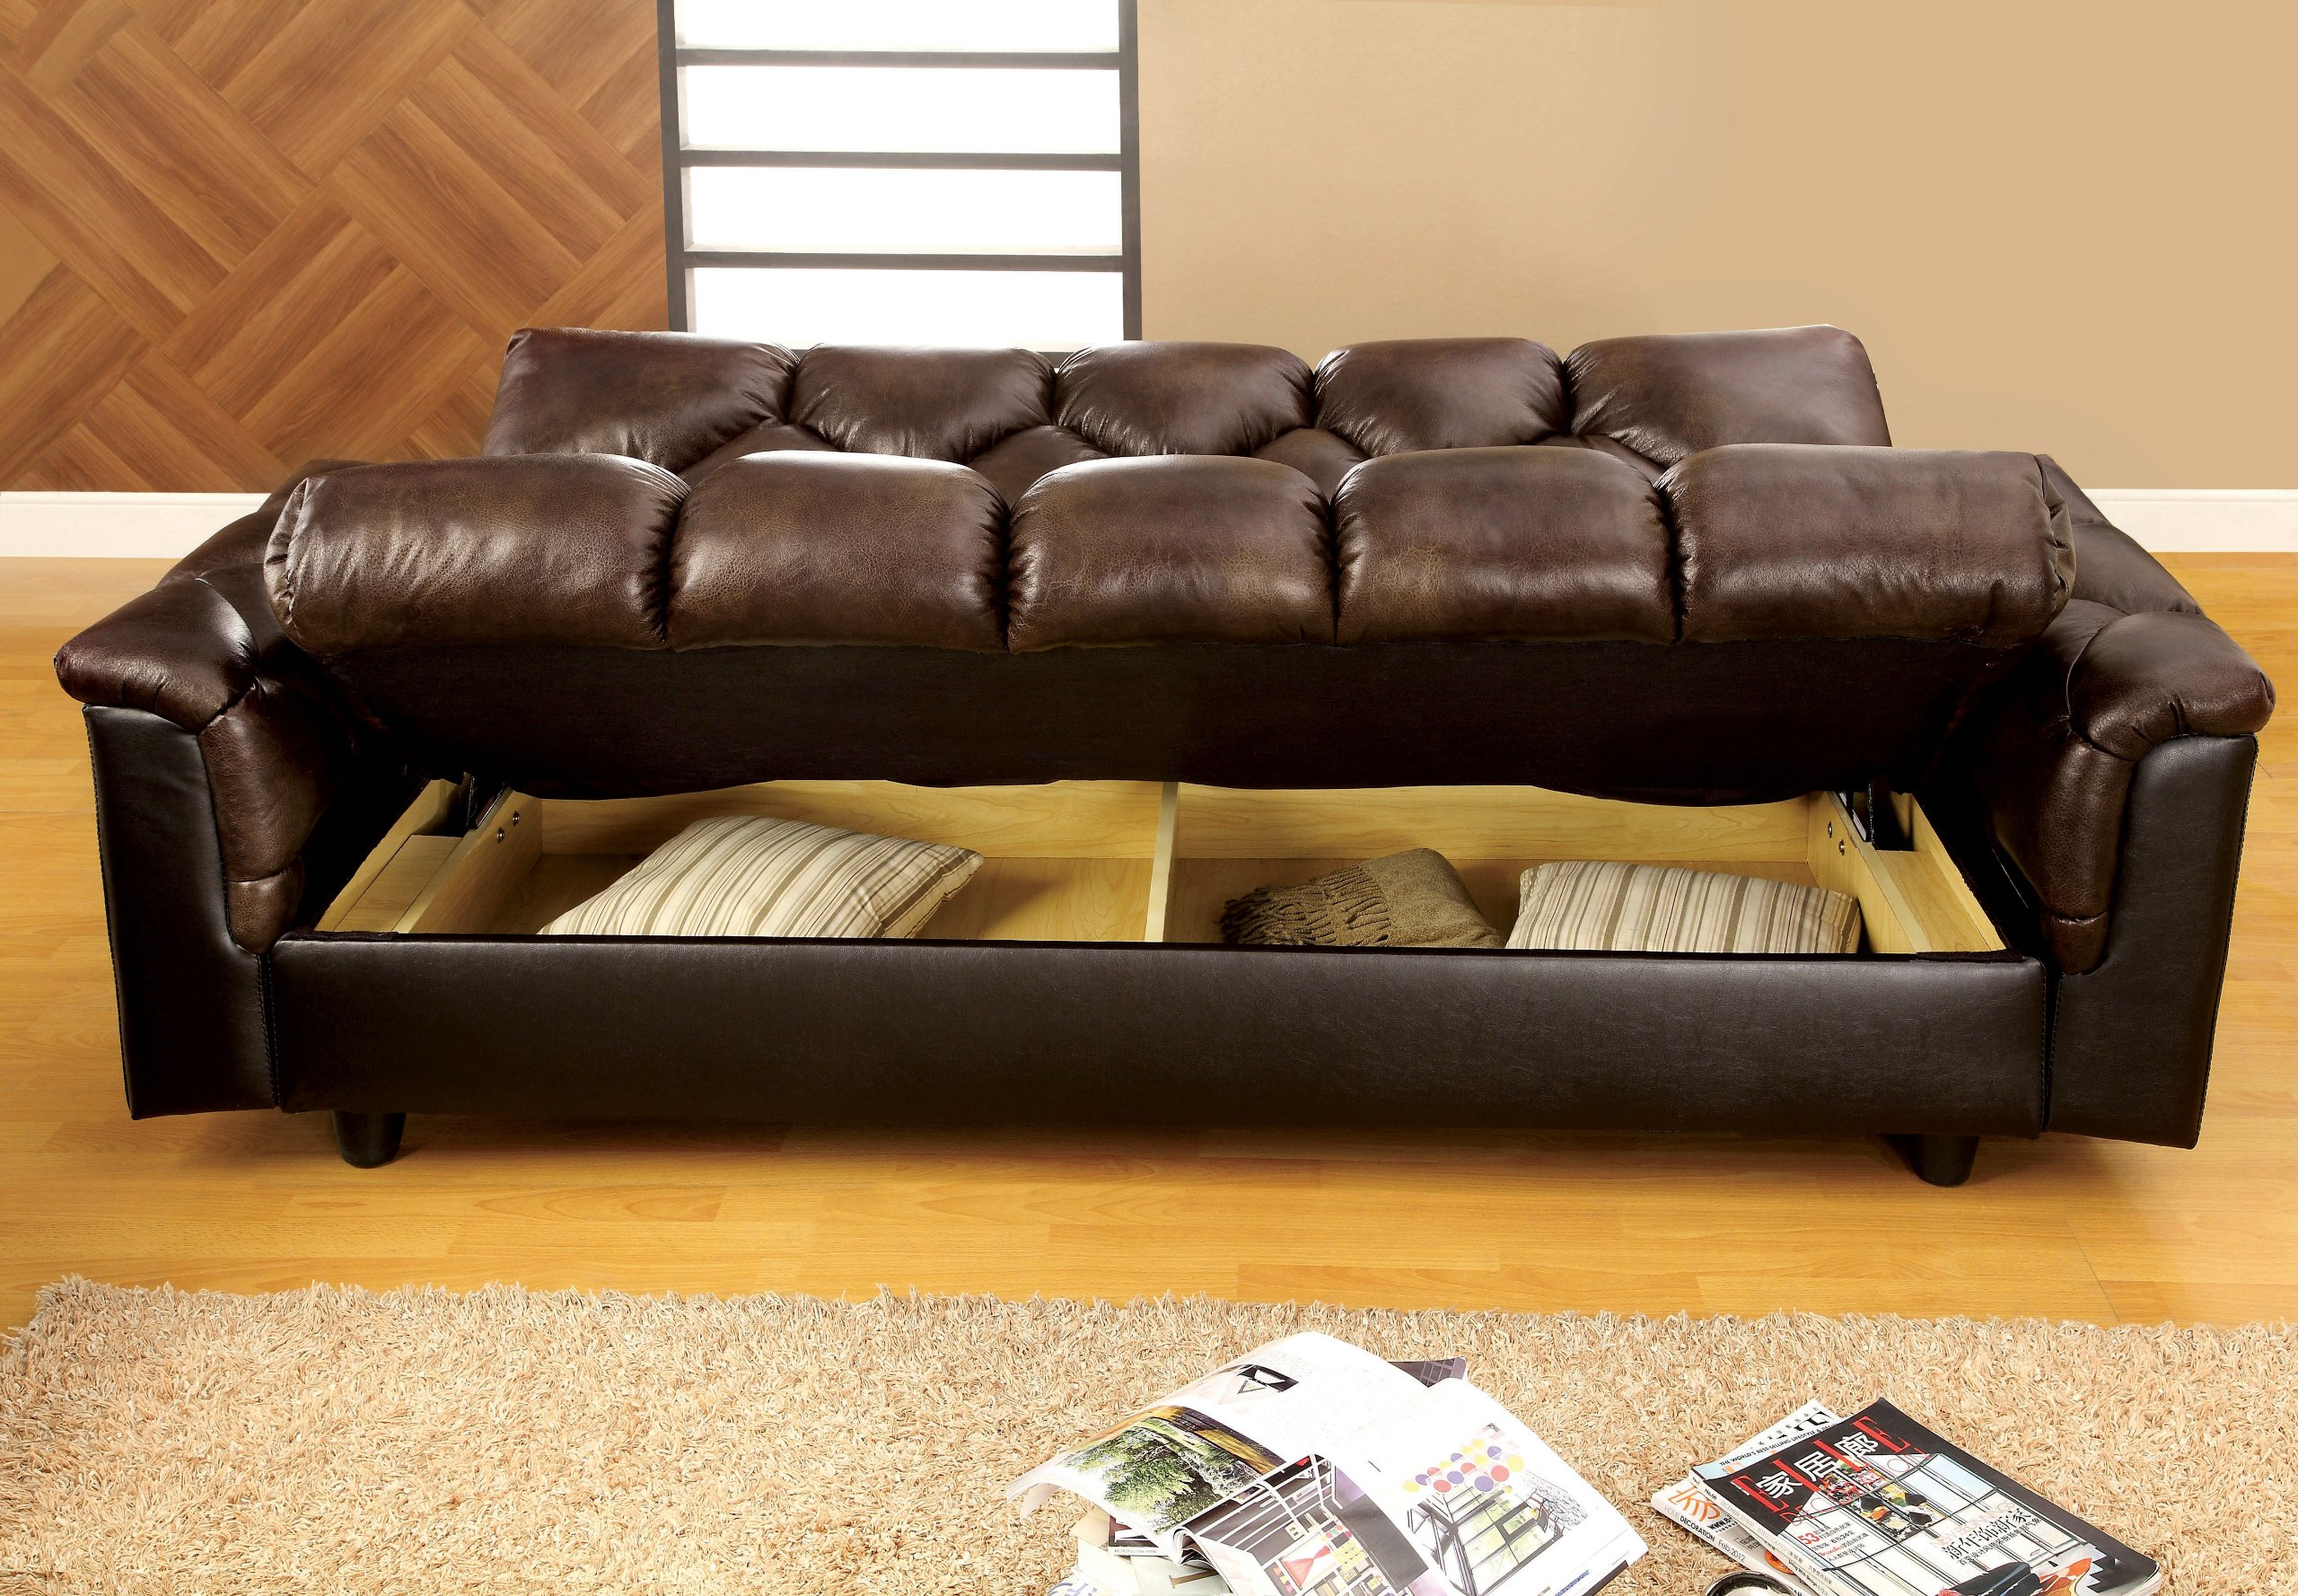 Furniture of America Montclaire Leather Vinyl Storage Futon